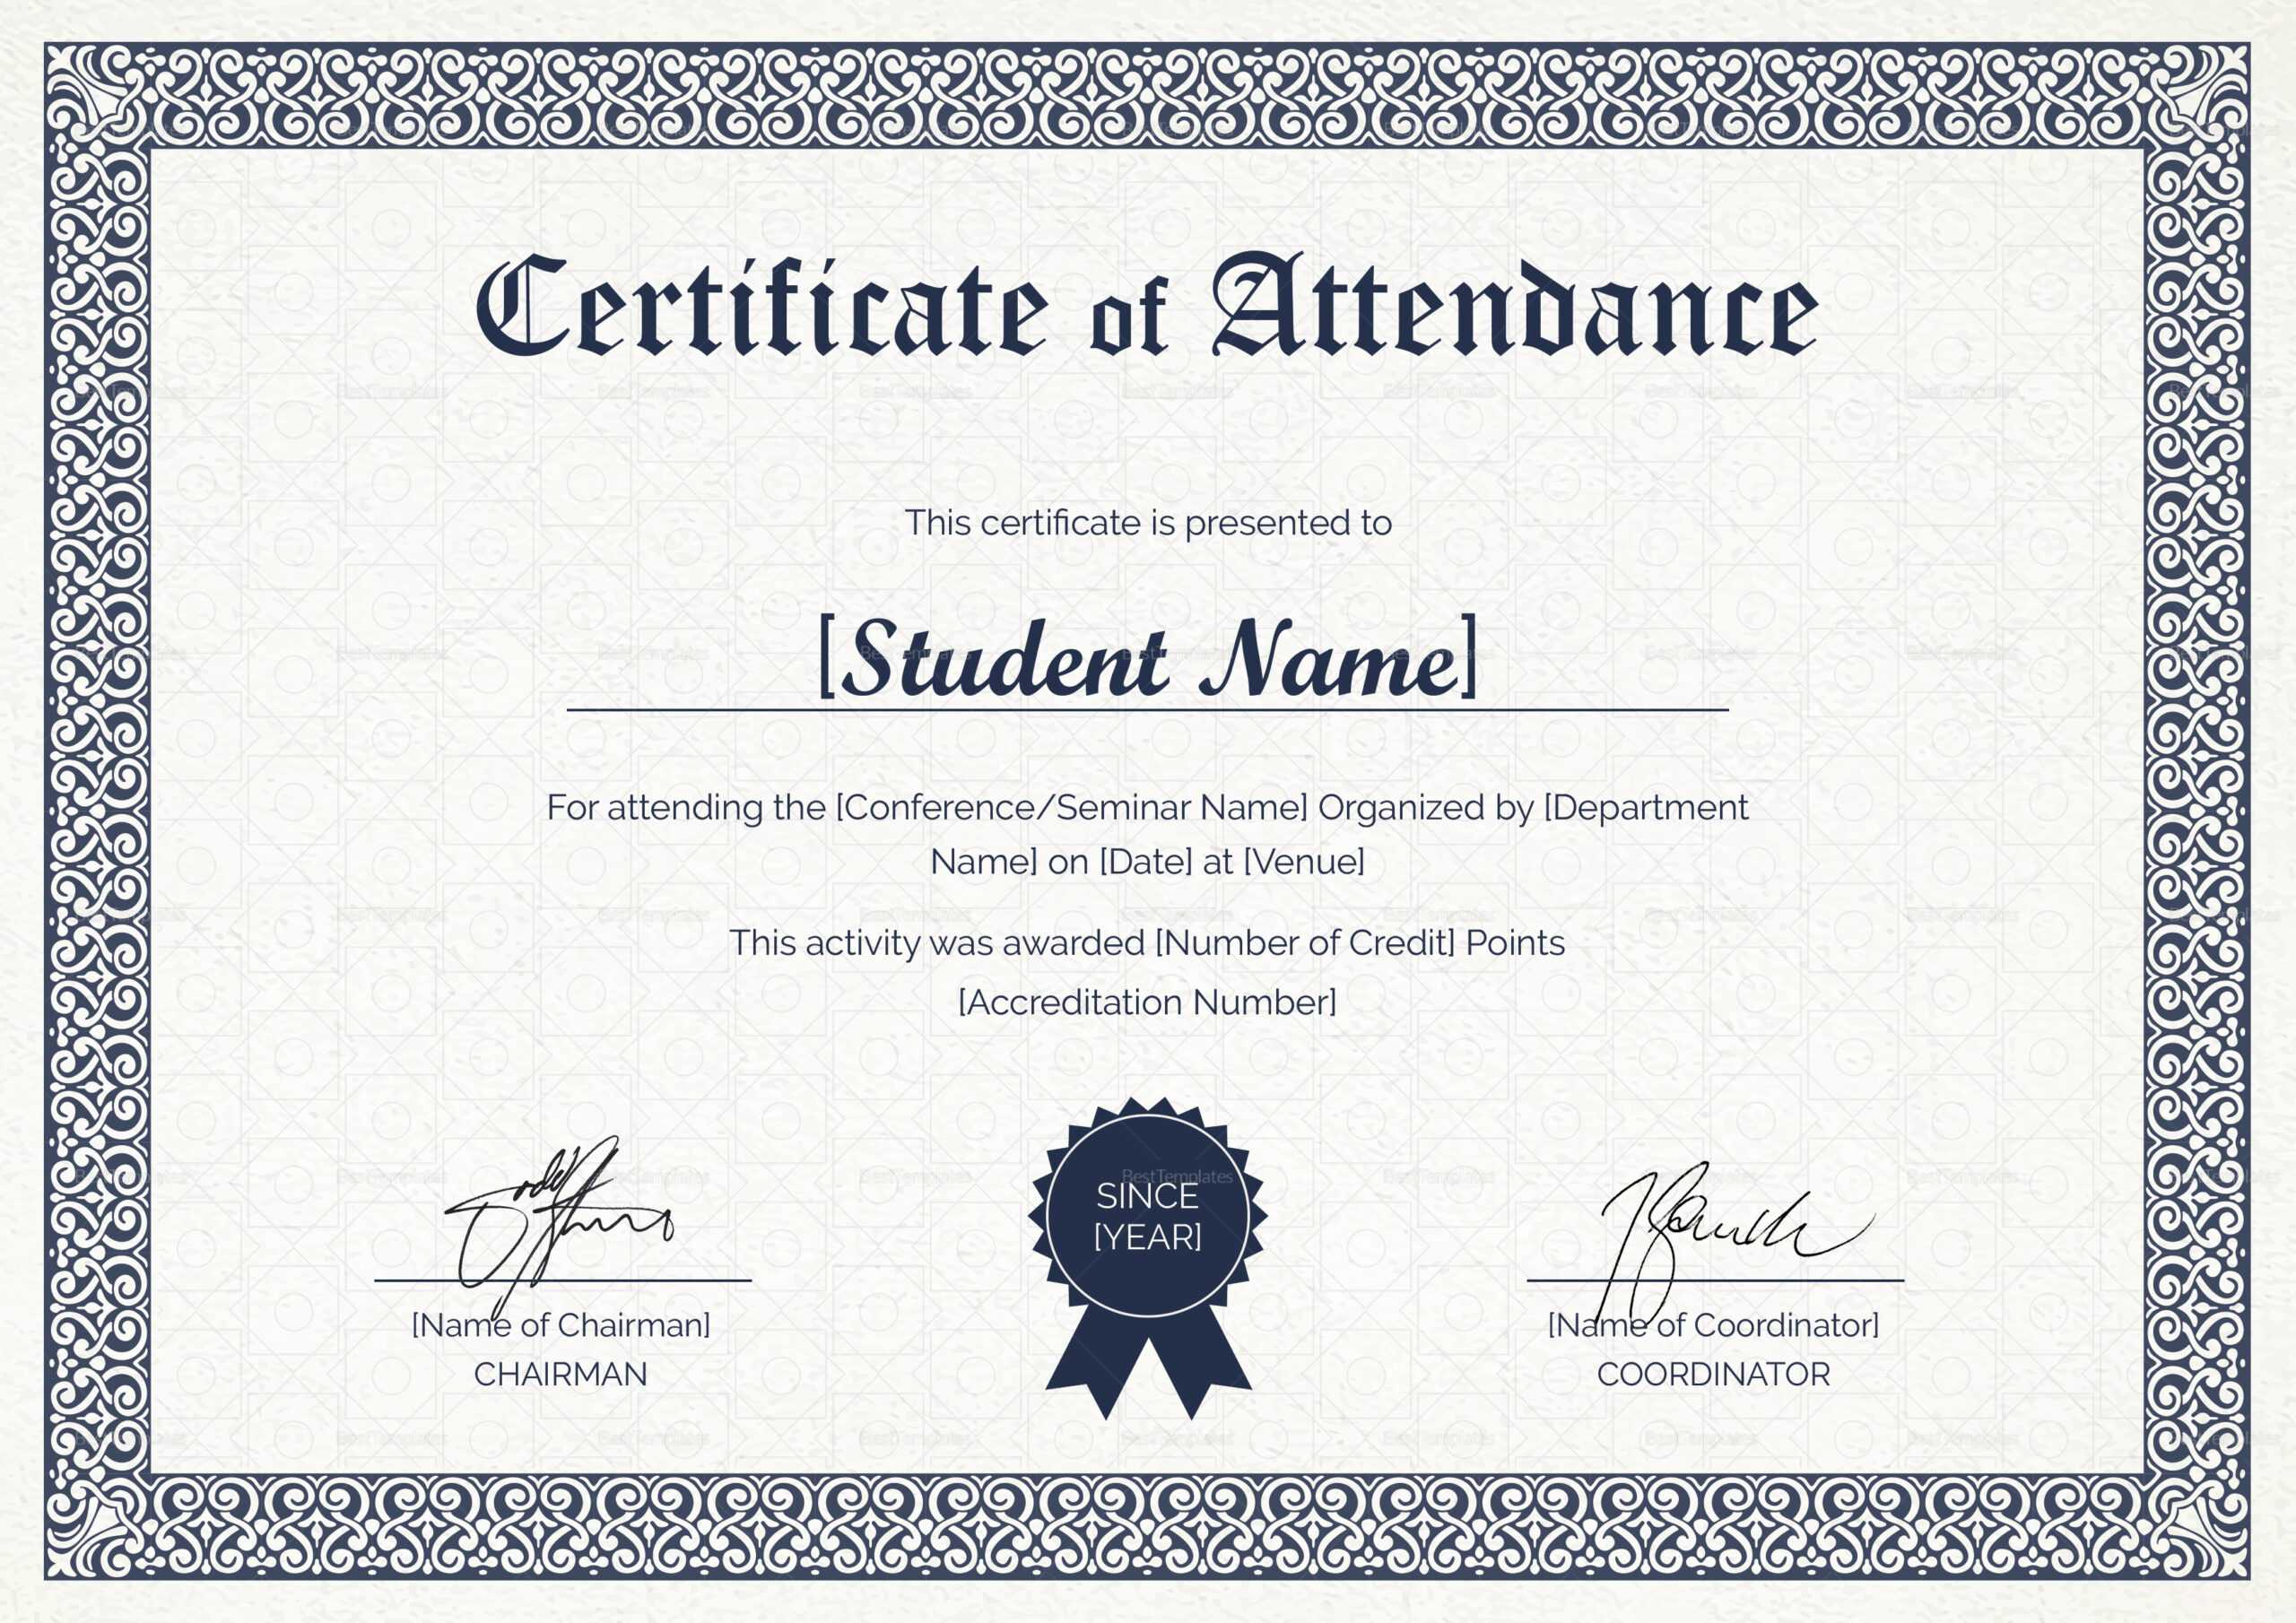 Students Attendance Certificate Template With Regard To Certificate Of Attendance Conference Template